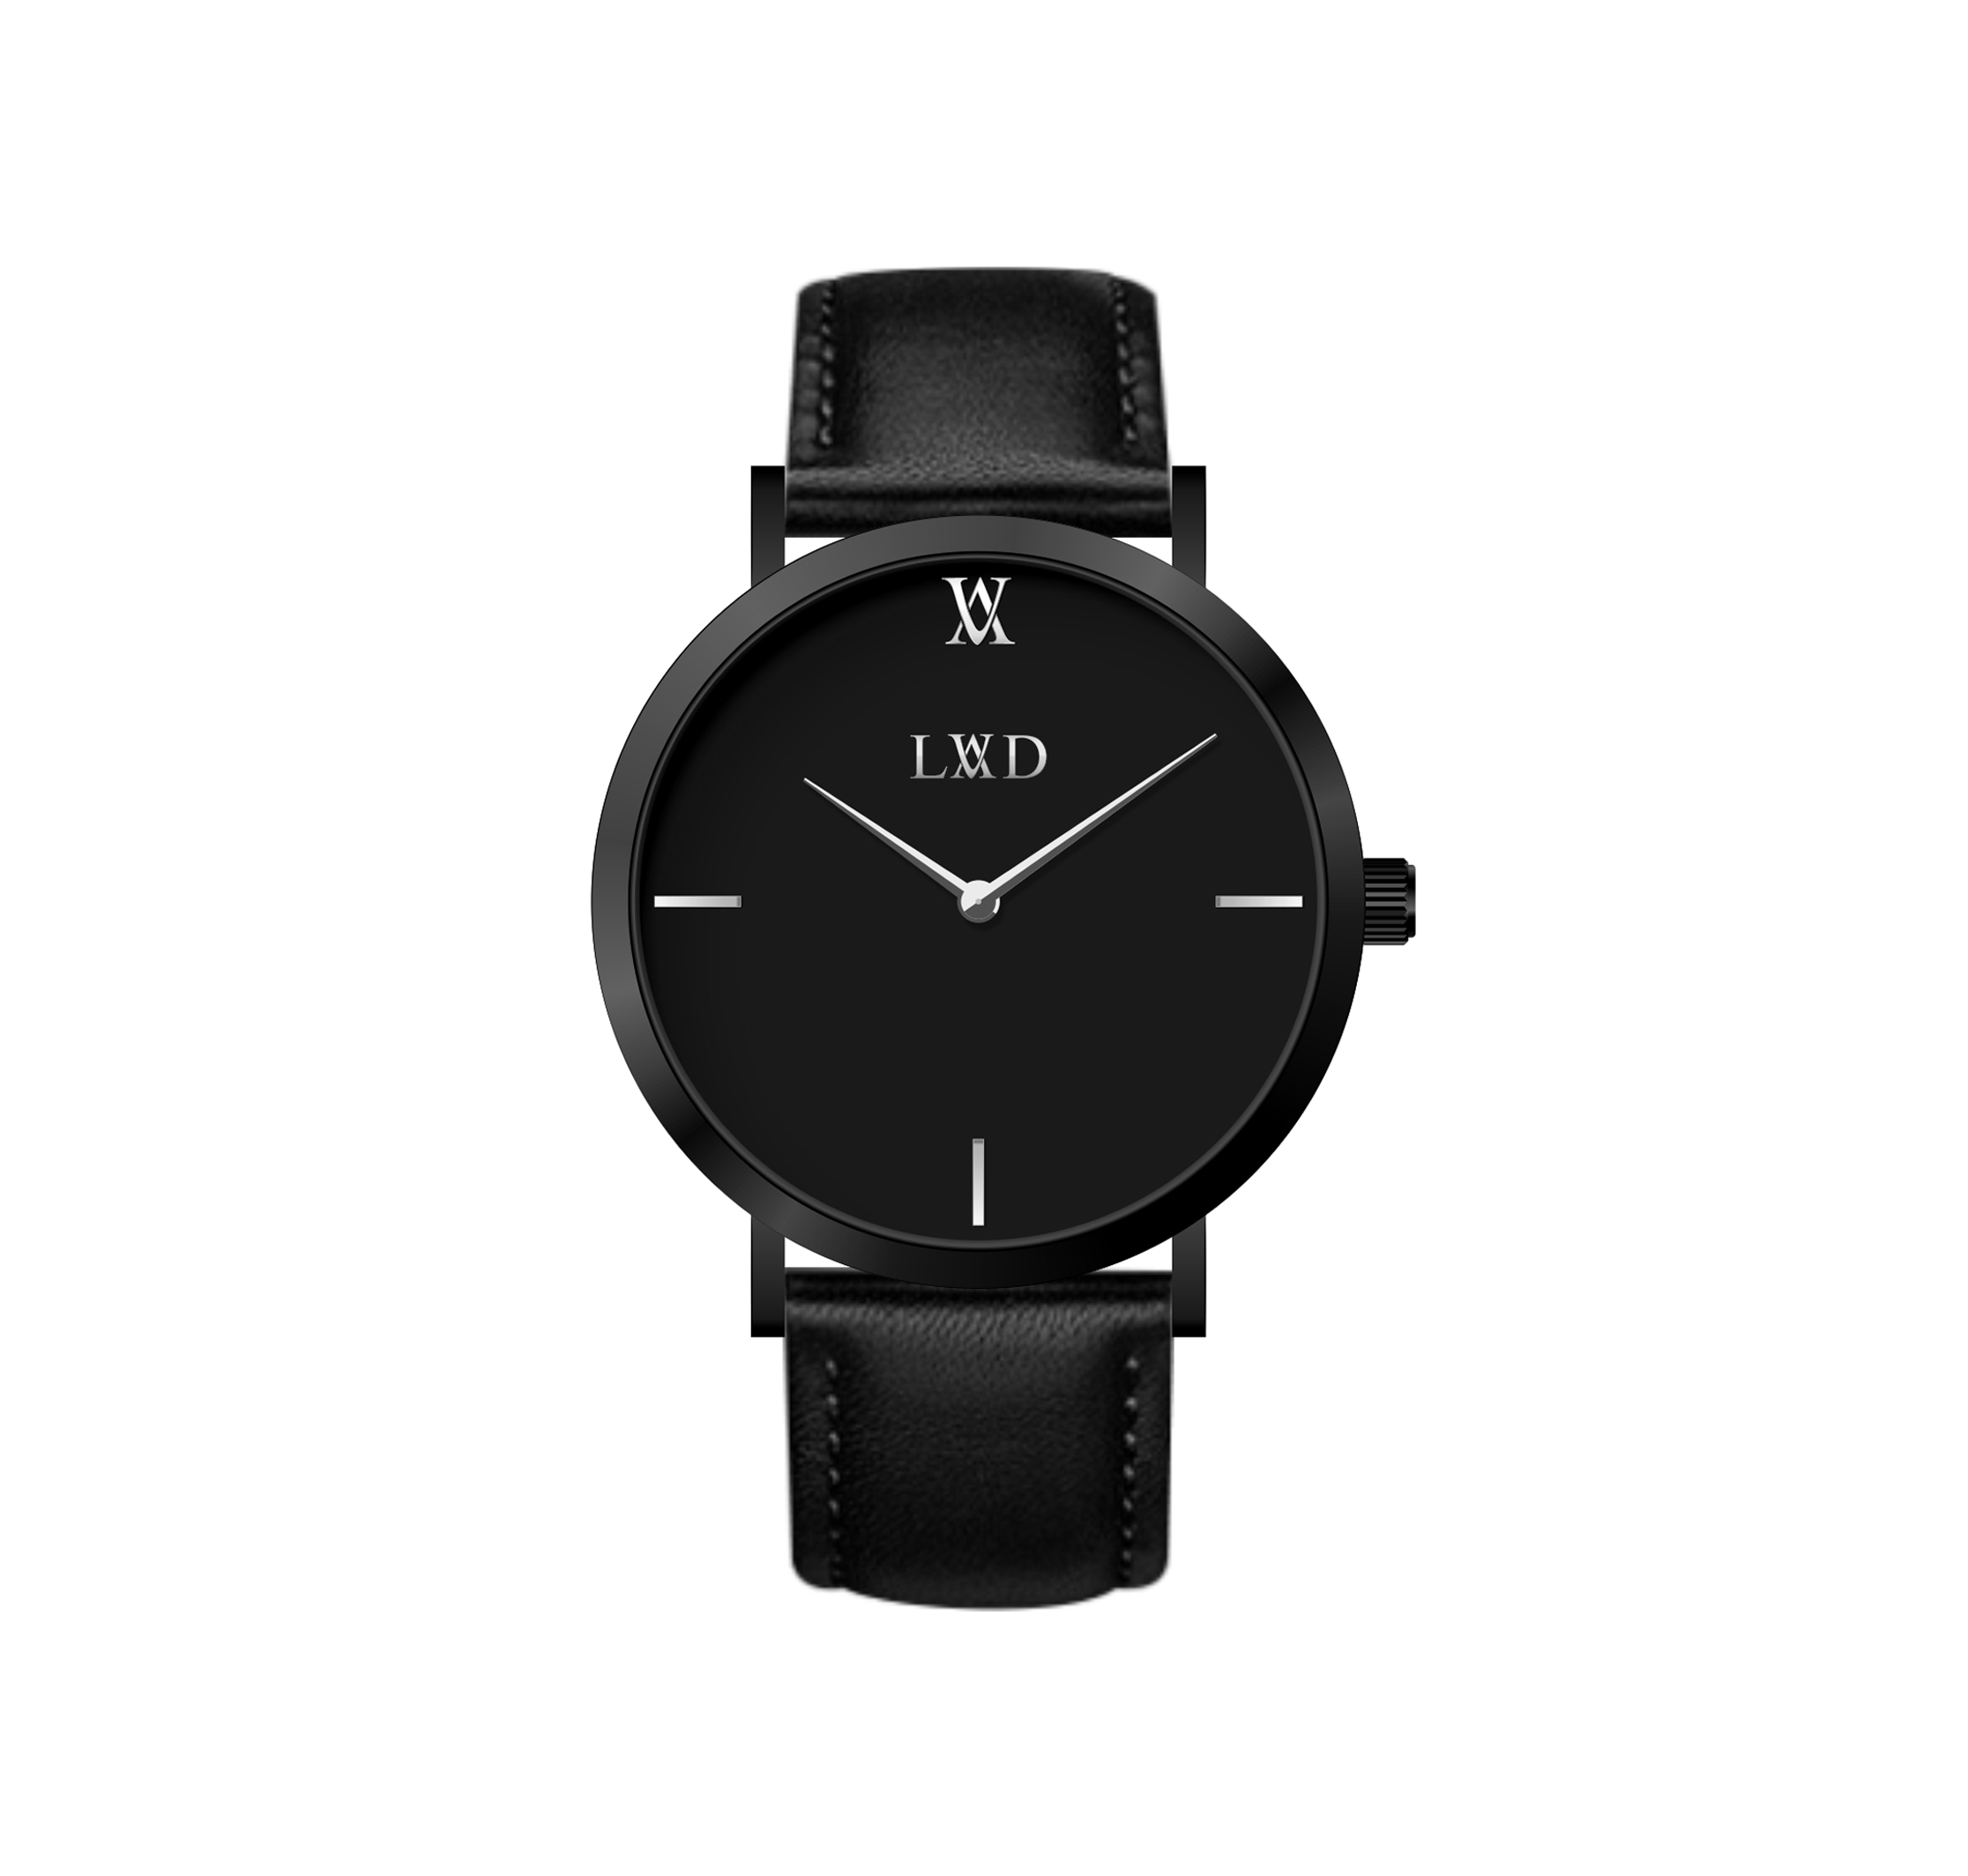 at watches giant strap unisex mondaine black john online white watch leather johnlewis lewis rsp main pdp buymondaine mini